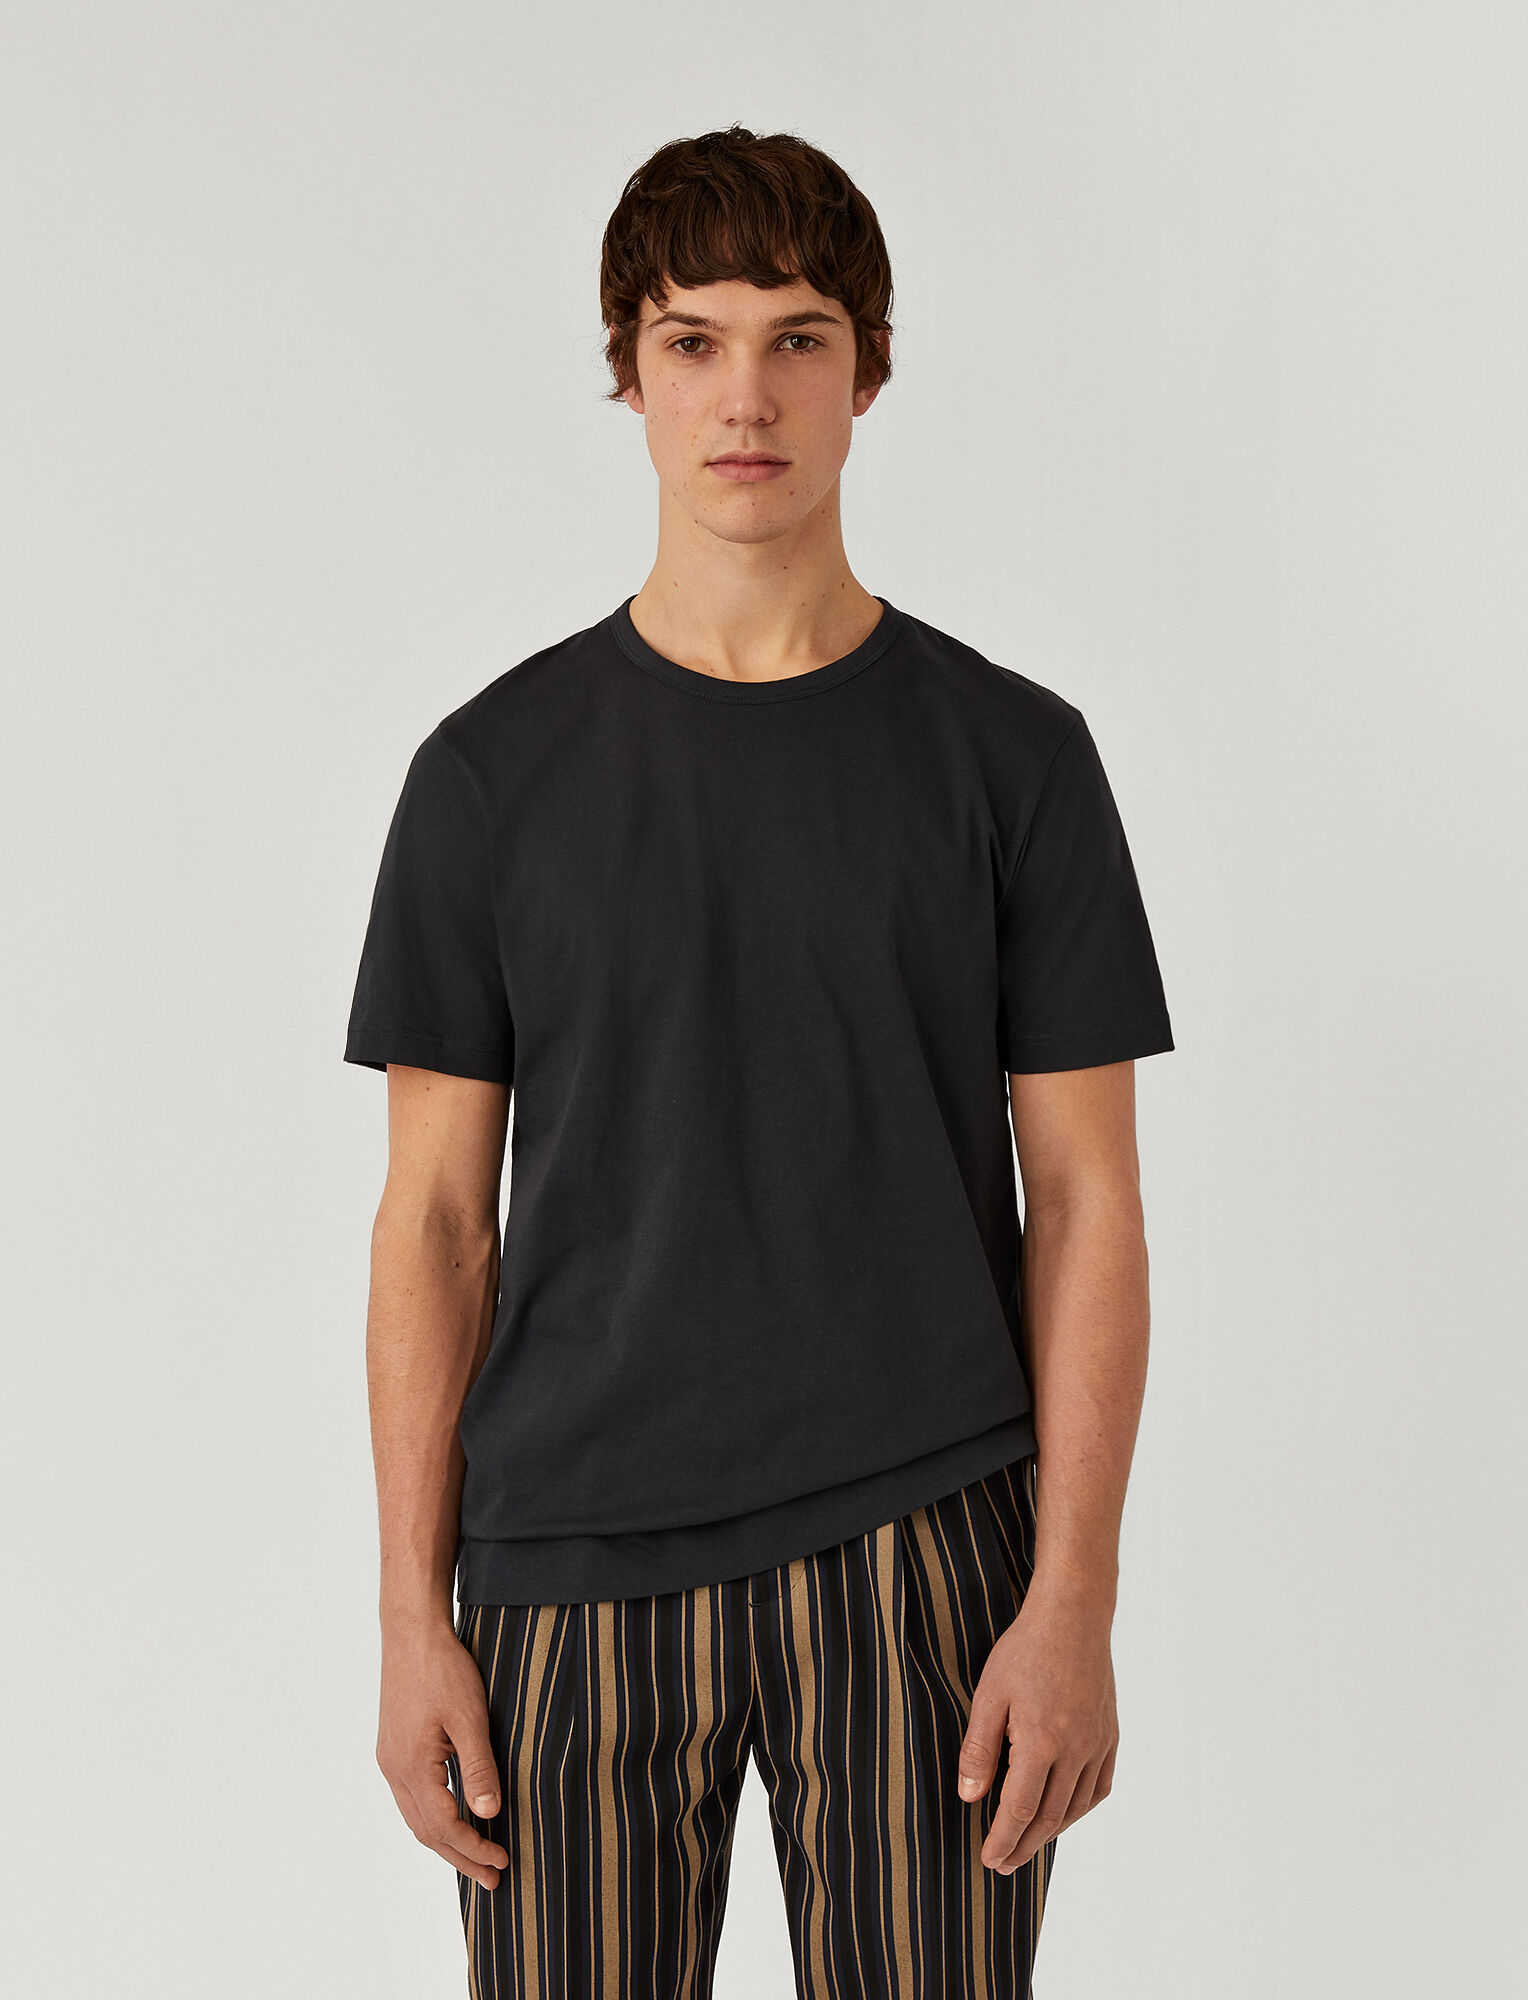 Joseph, Mercerised Jersey Tee, in NAVY